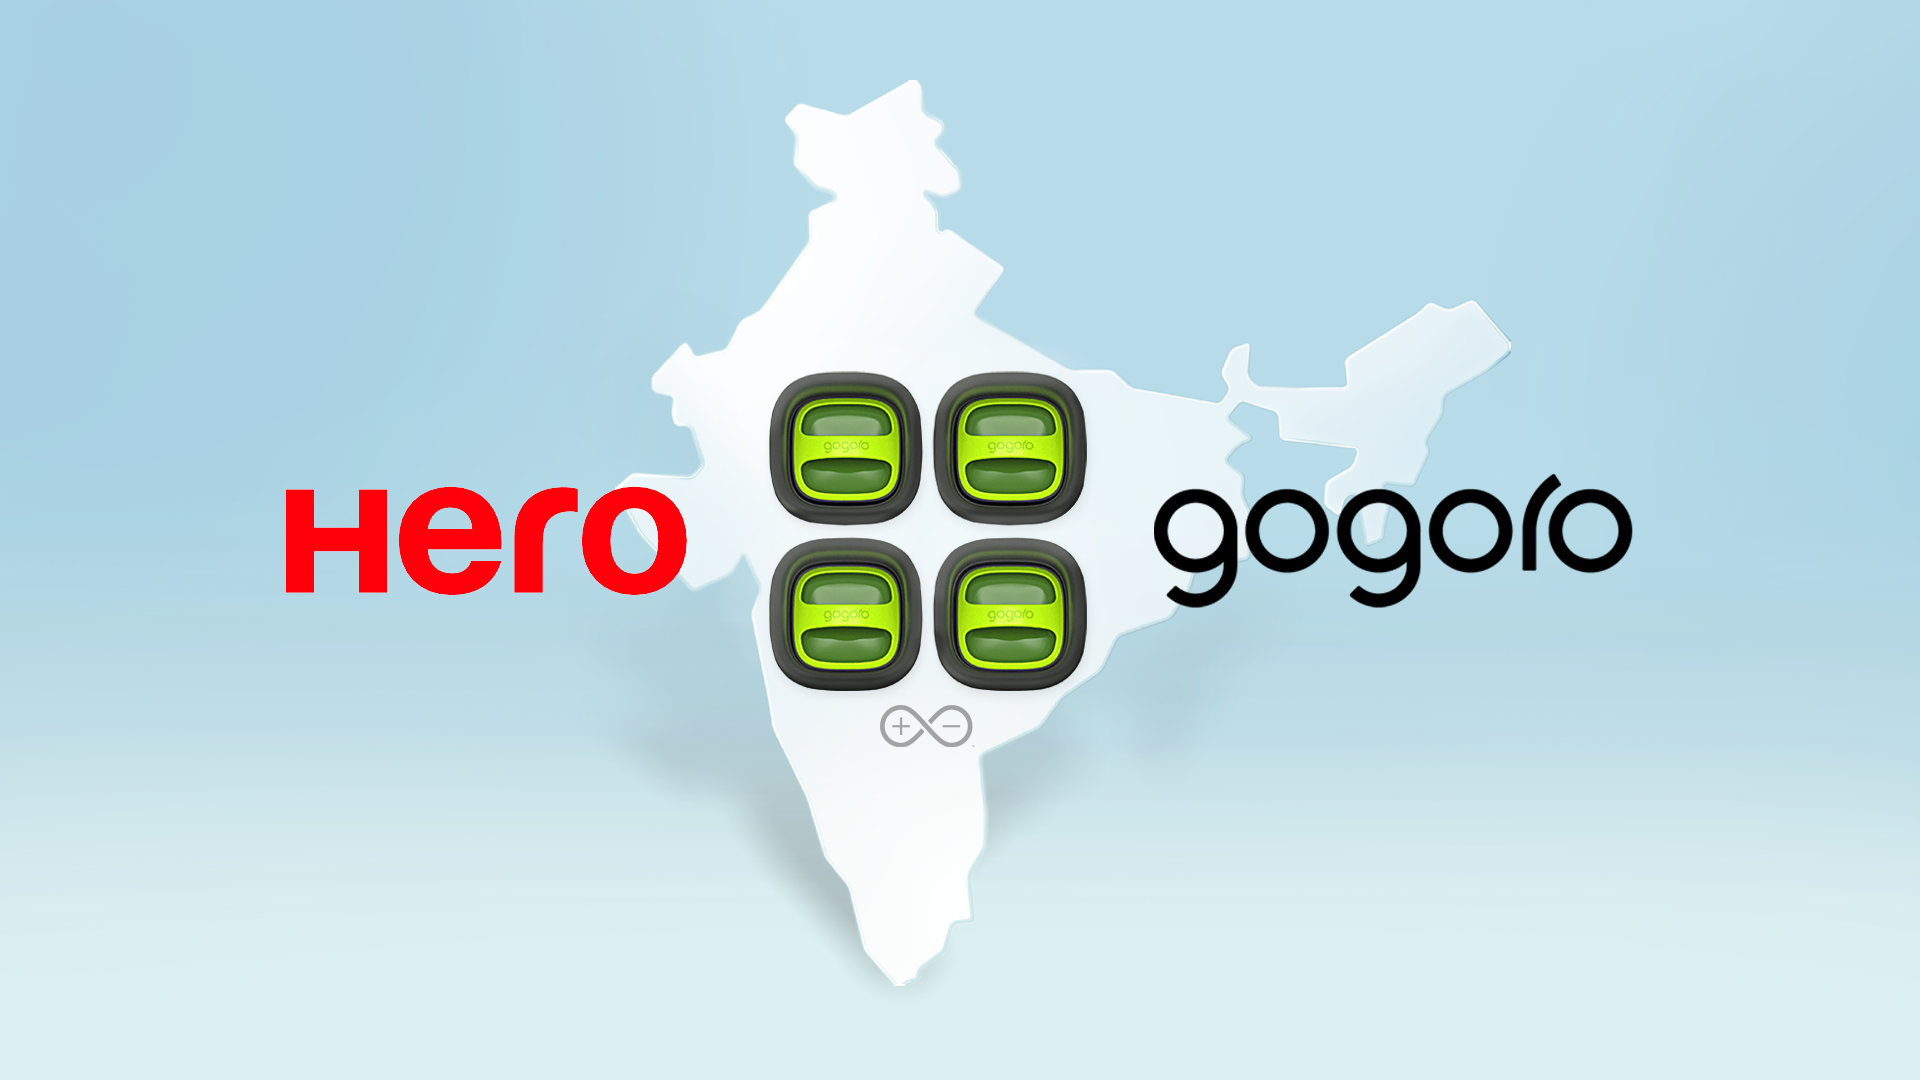 Gogoro partners with India's Hero MotoCorp, one of the world's largest two-wheel vehicle makers